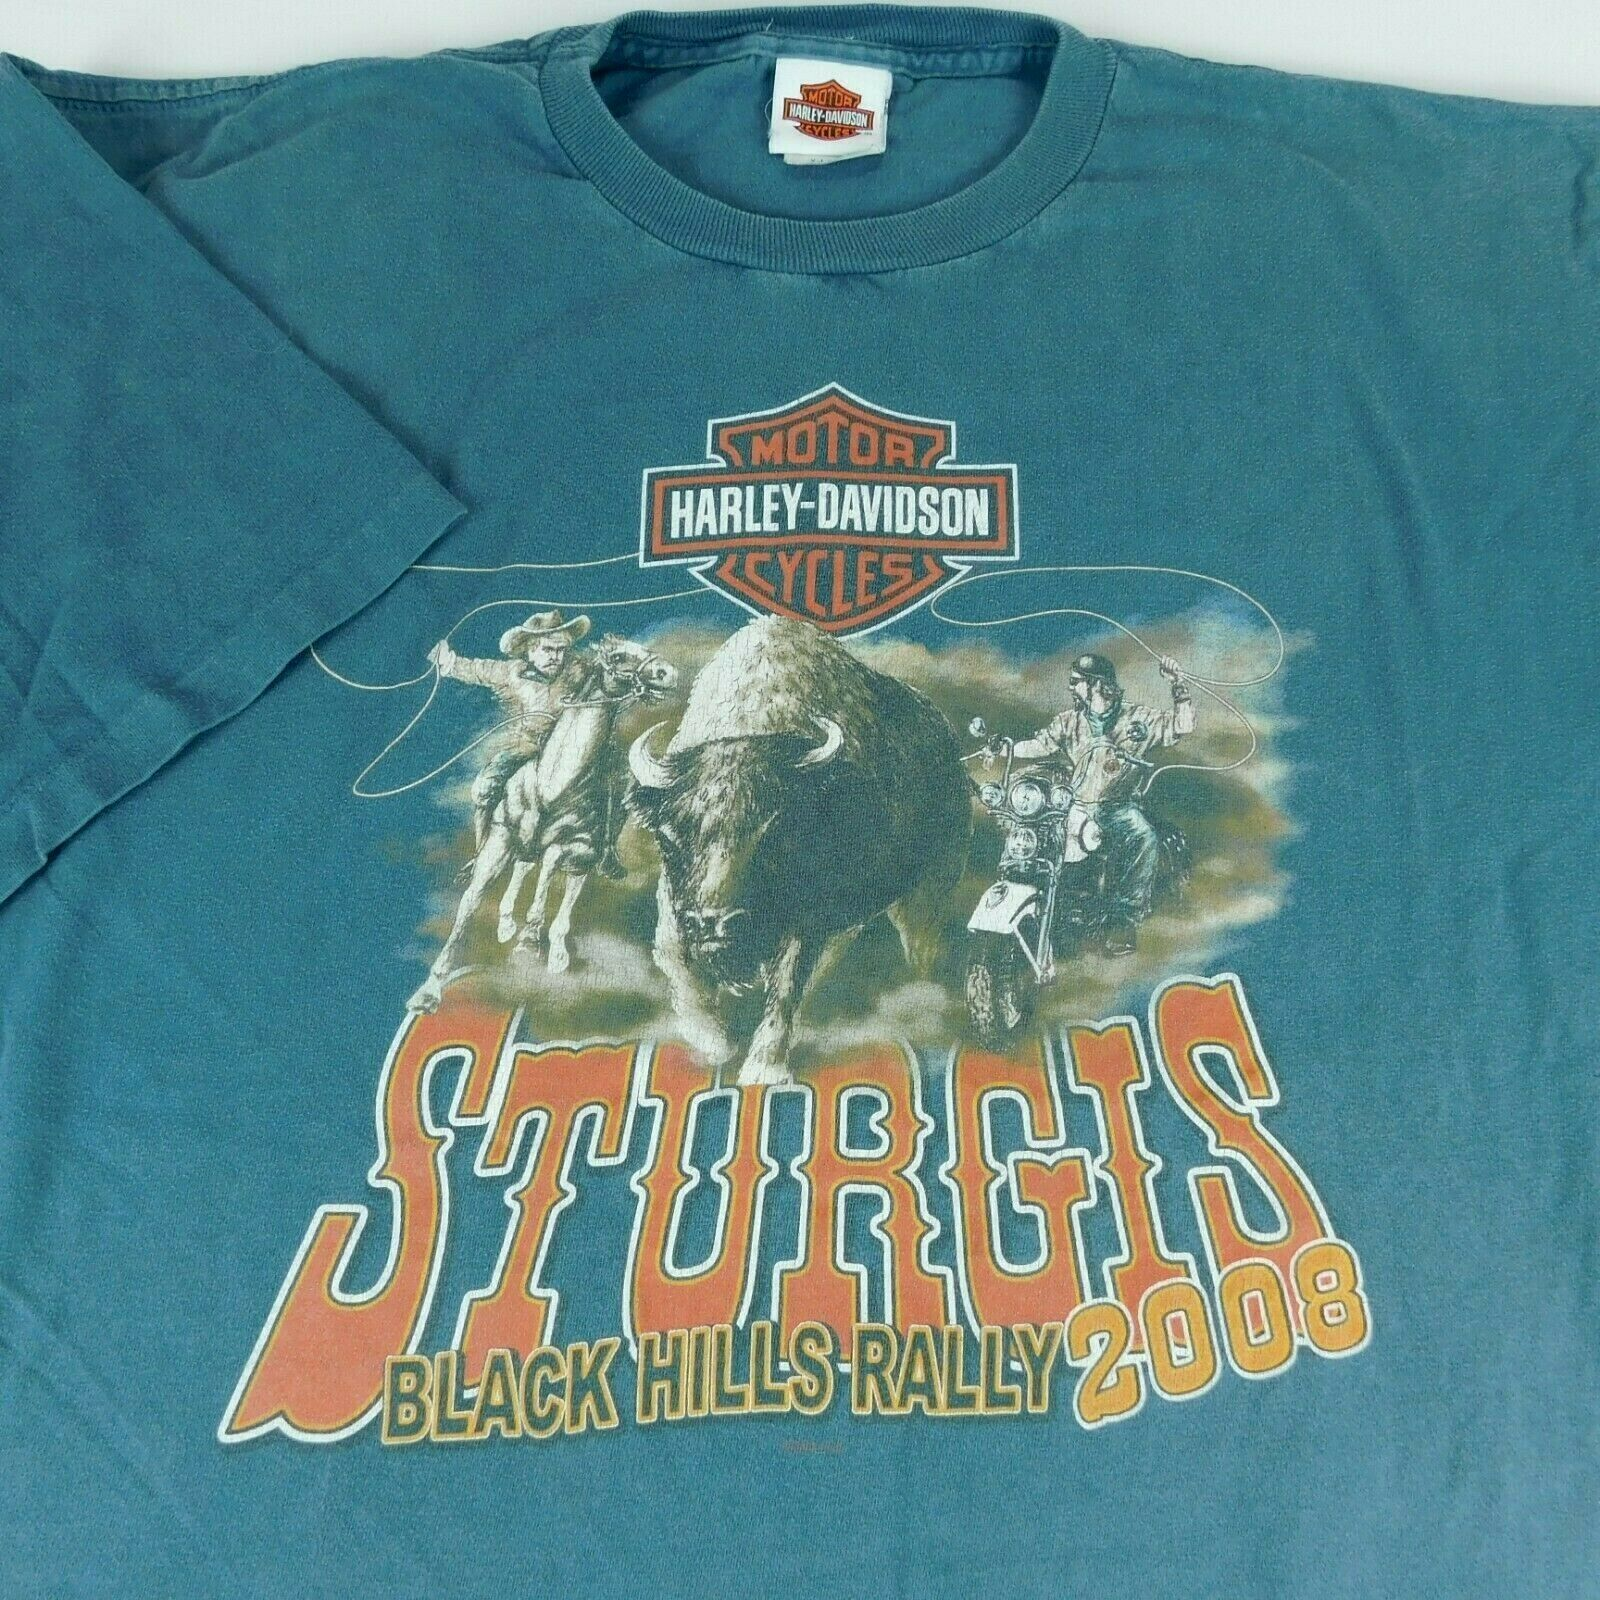 Harley Davidson Sturgis Black Hills Rally 2008 Buffalo Chip Blue T Shirt Sz XL image 2